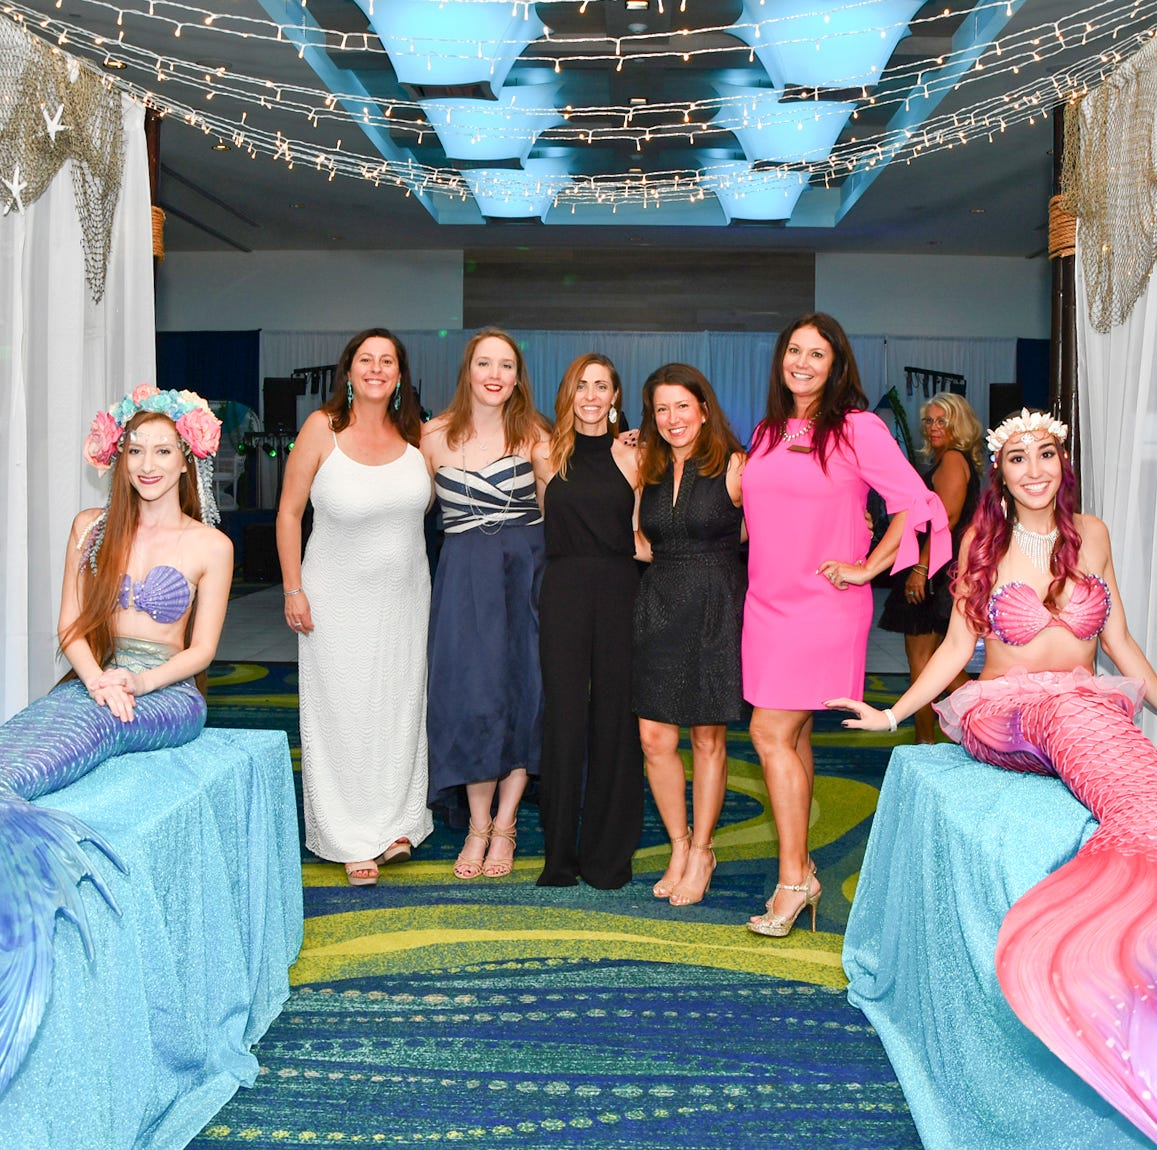 Paws & Claws Gala raises record $265,000 for Humane Society of Treasure Coast